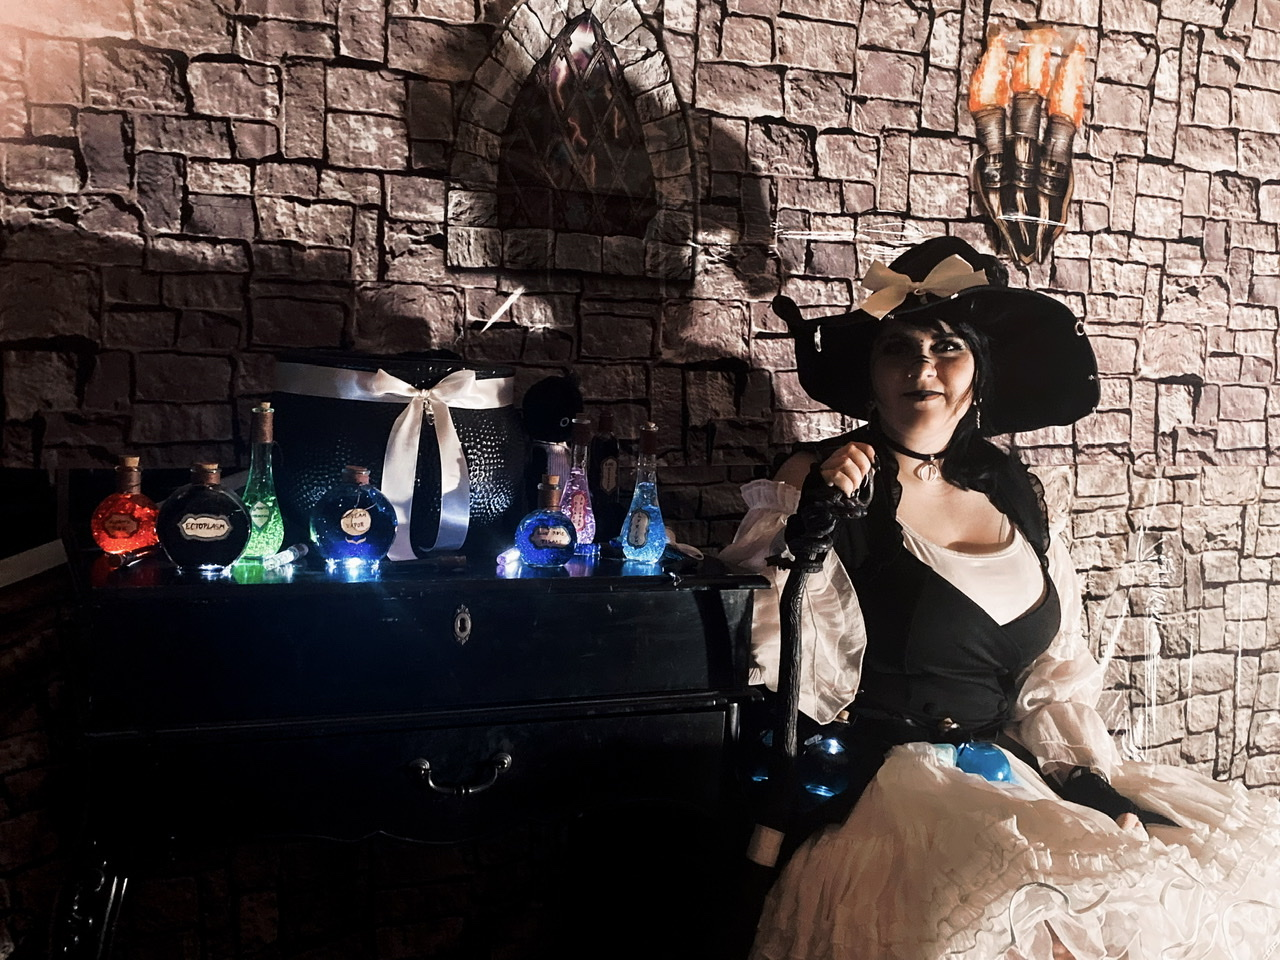 Sweet Witch Costume, Made By Autistic Creator